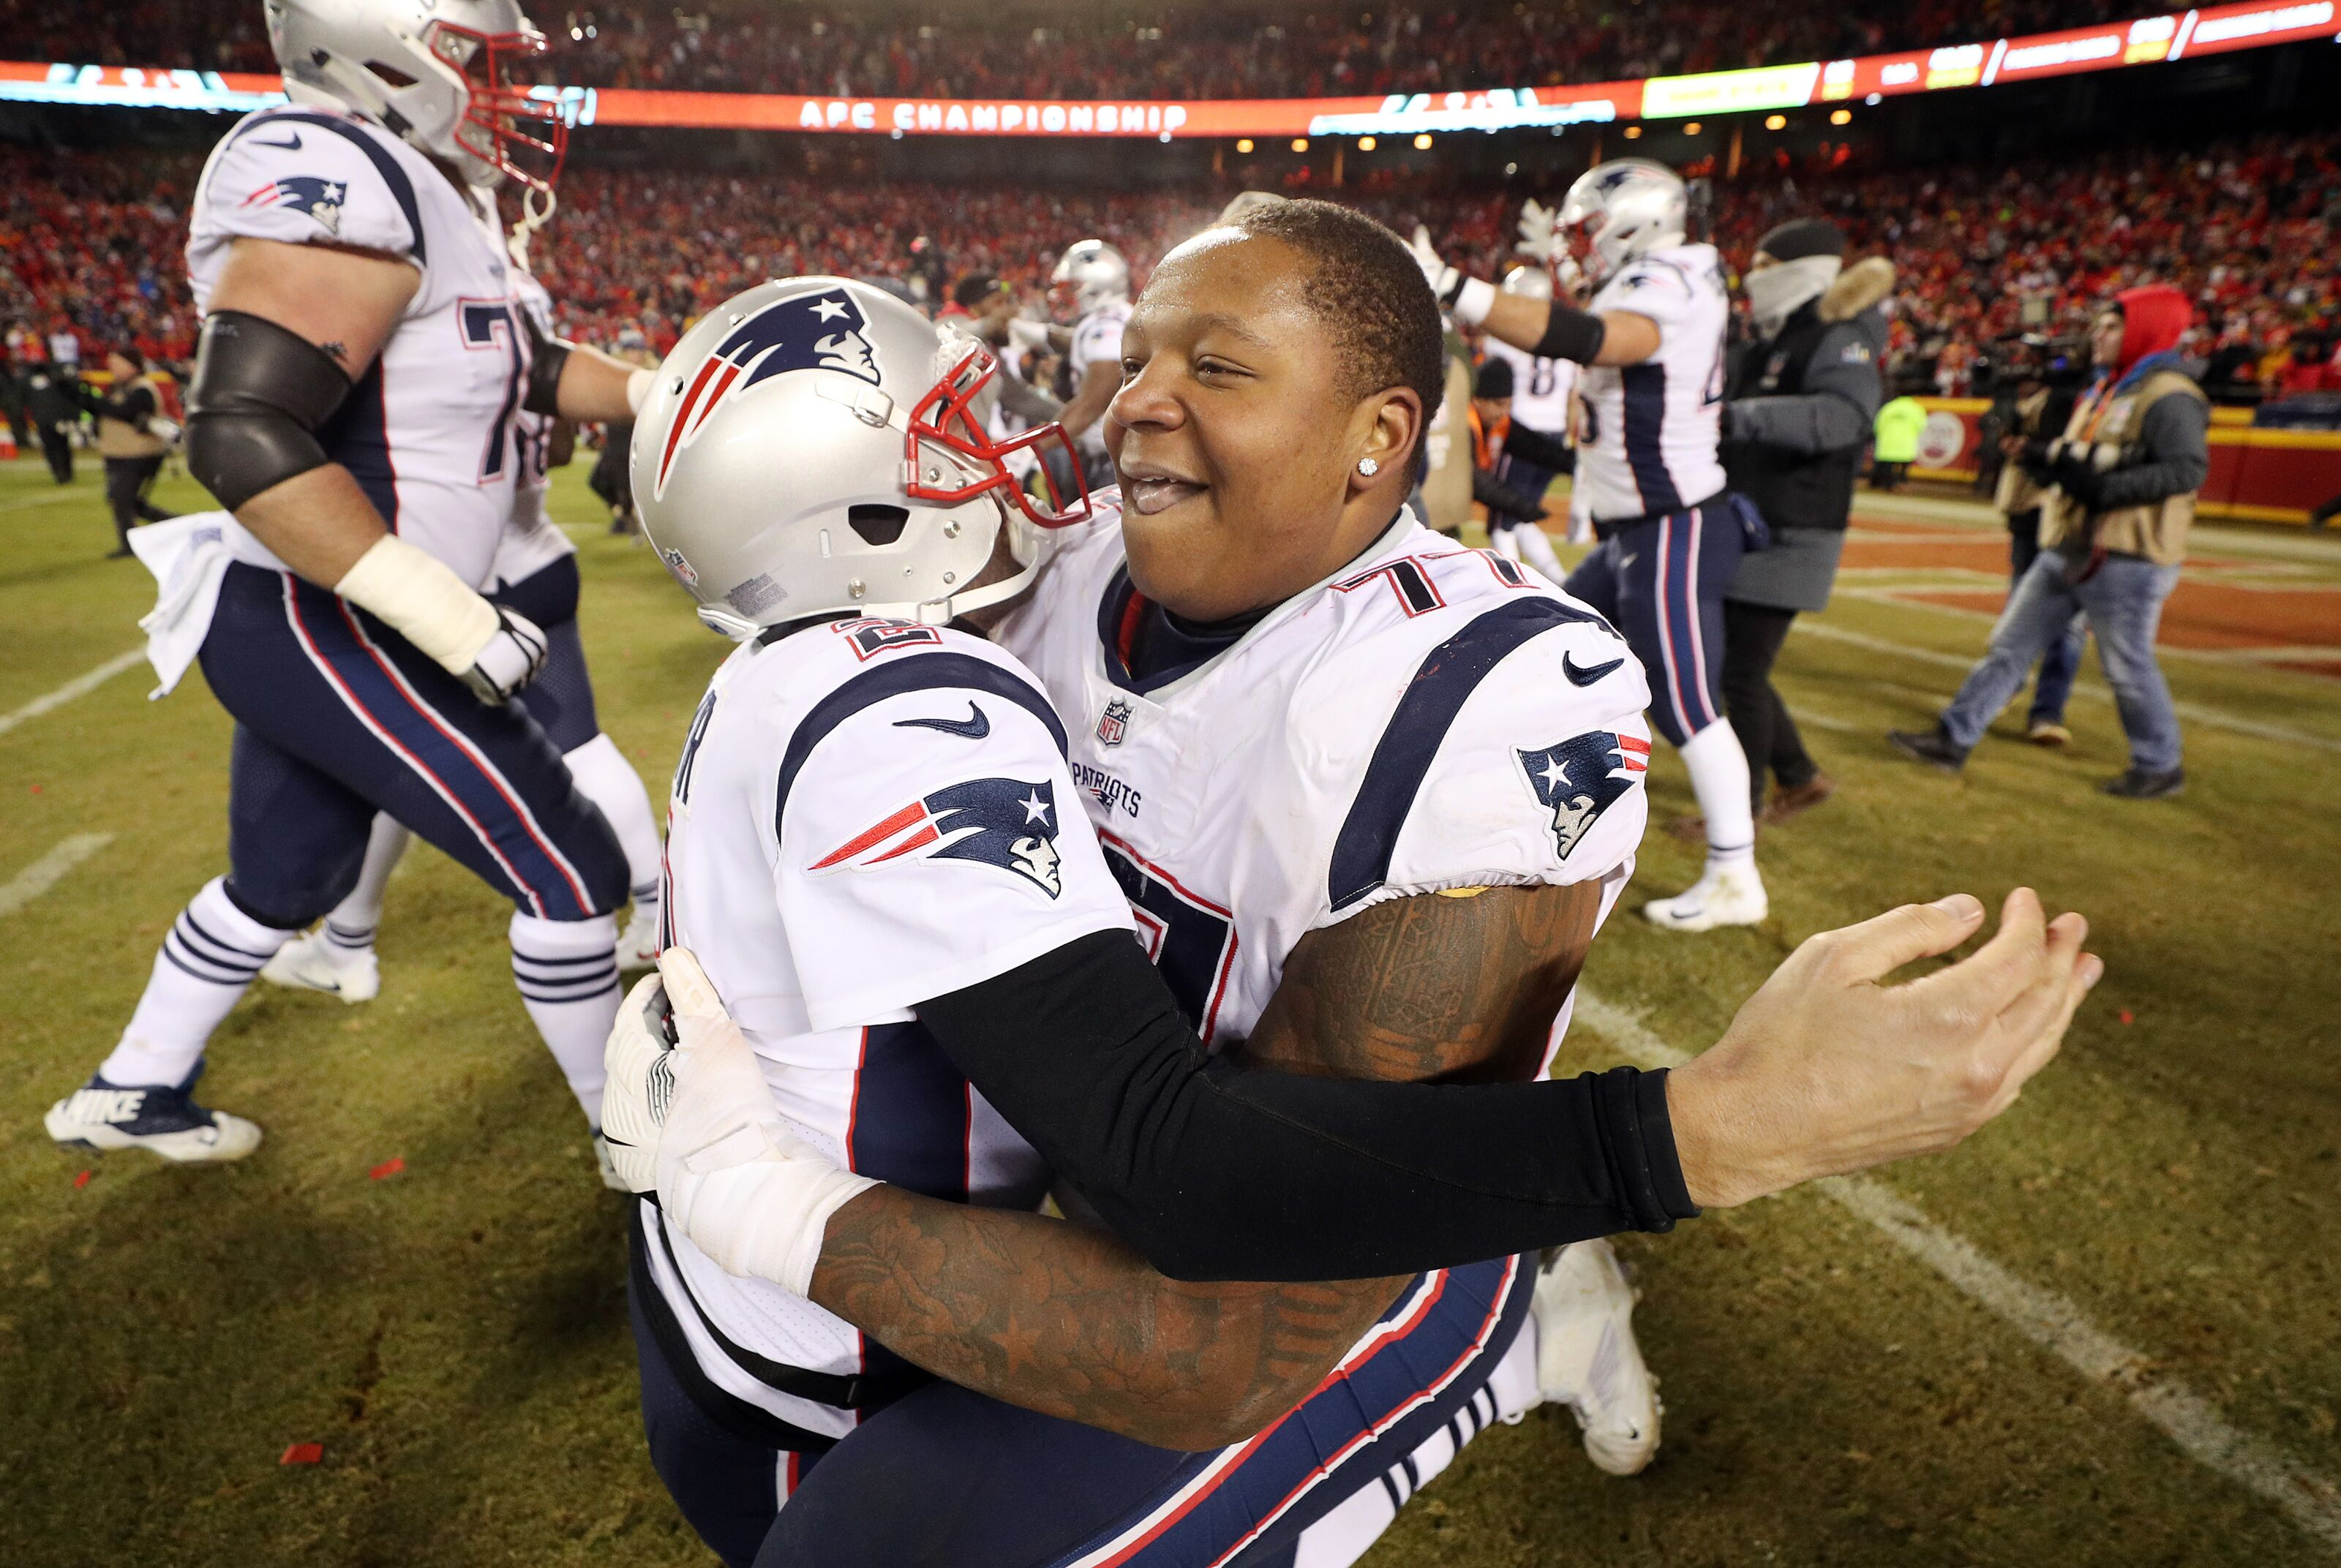 Trent Brown weighs options in free agency, including Patriots